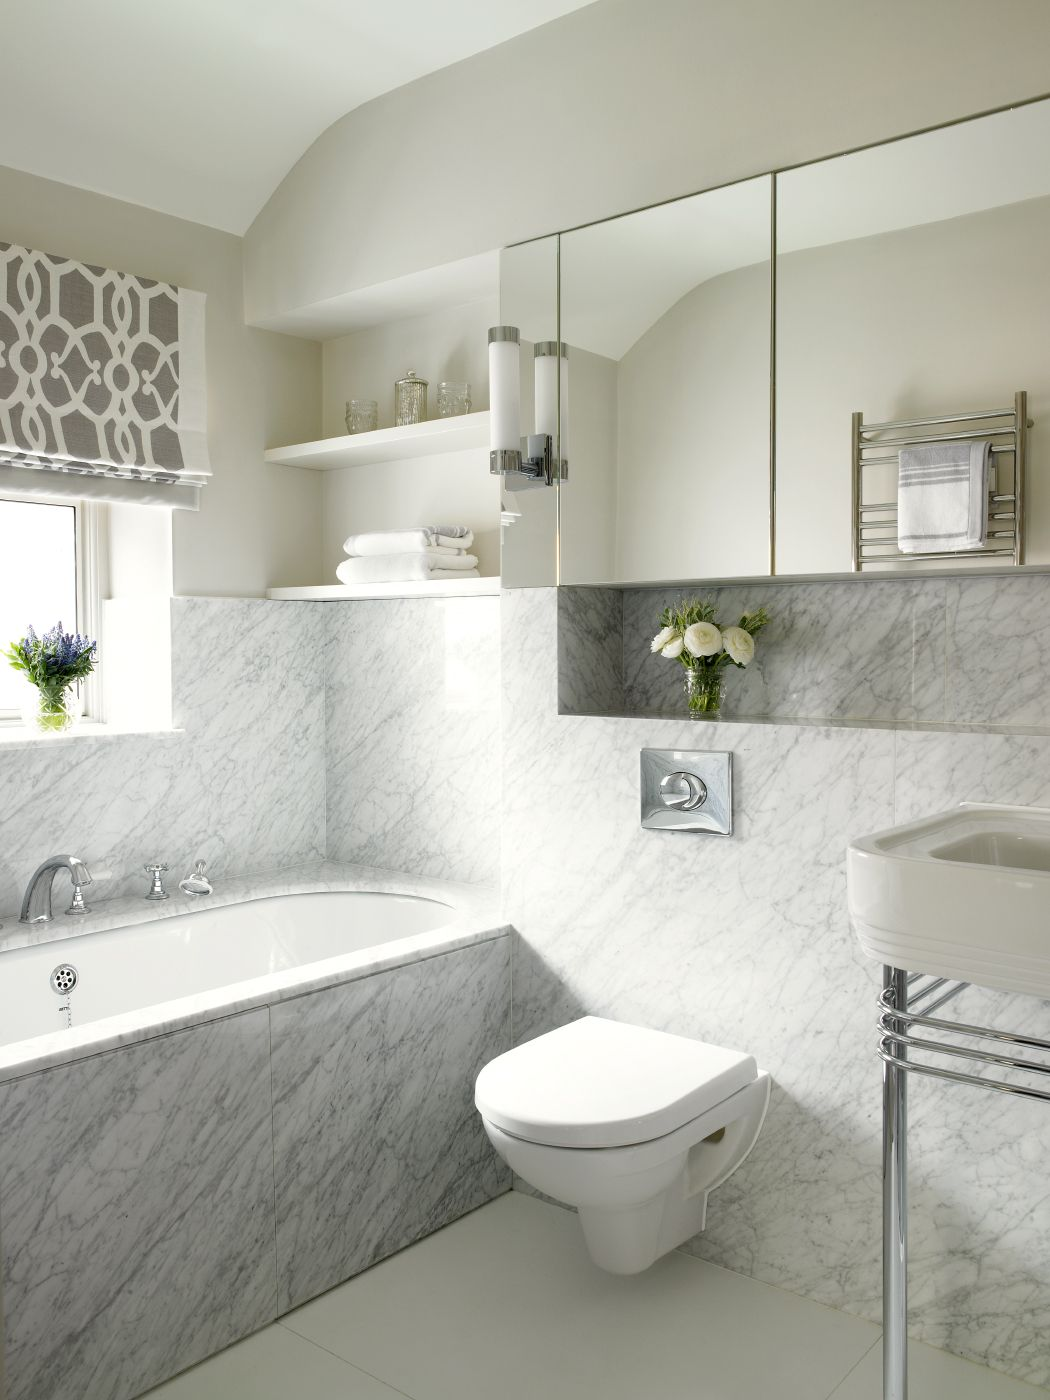 marble bathroom with mirrored cabinet | For the Home | Pinterest ...